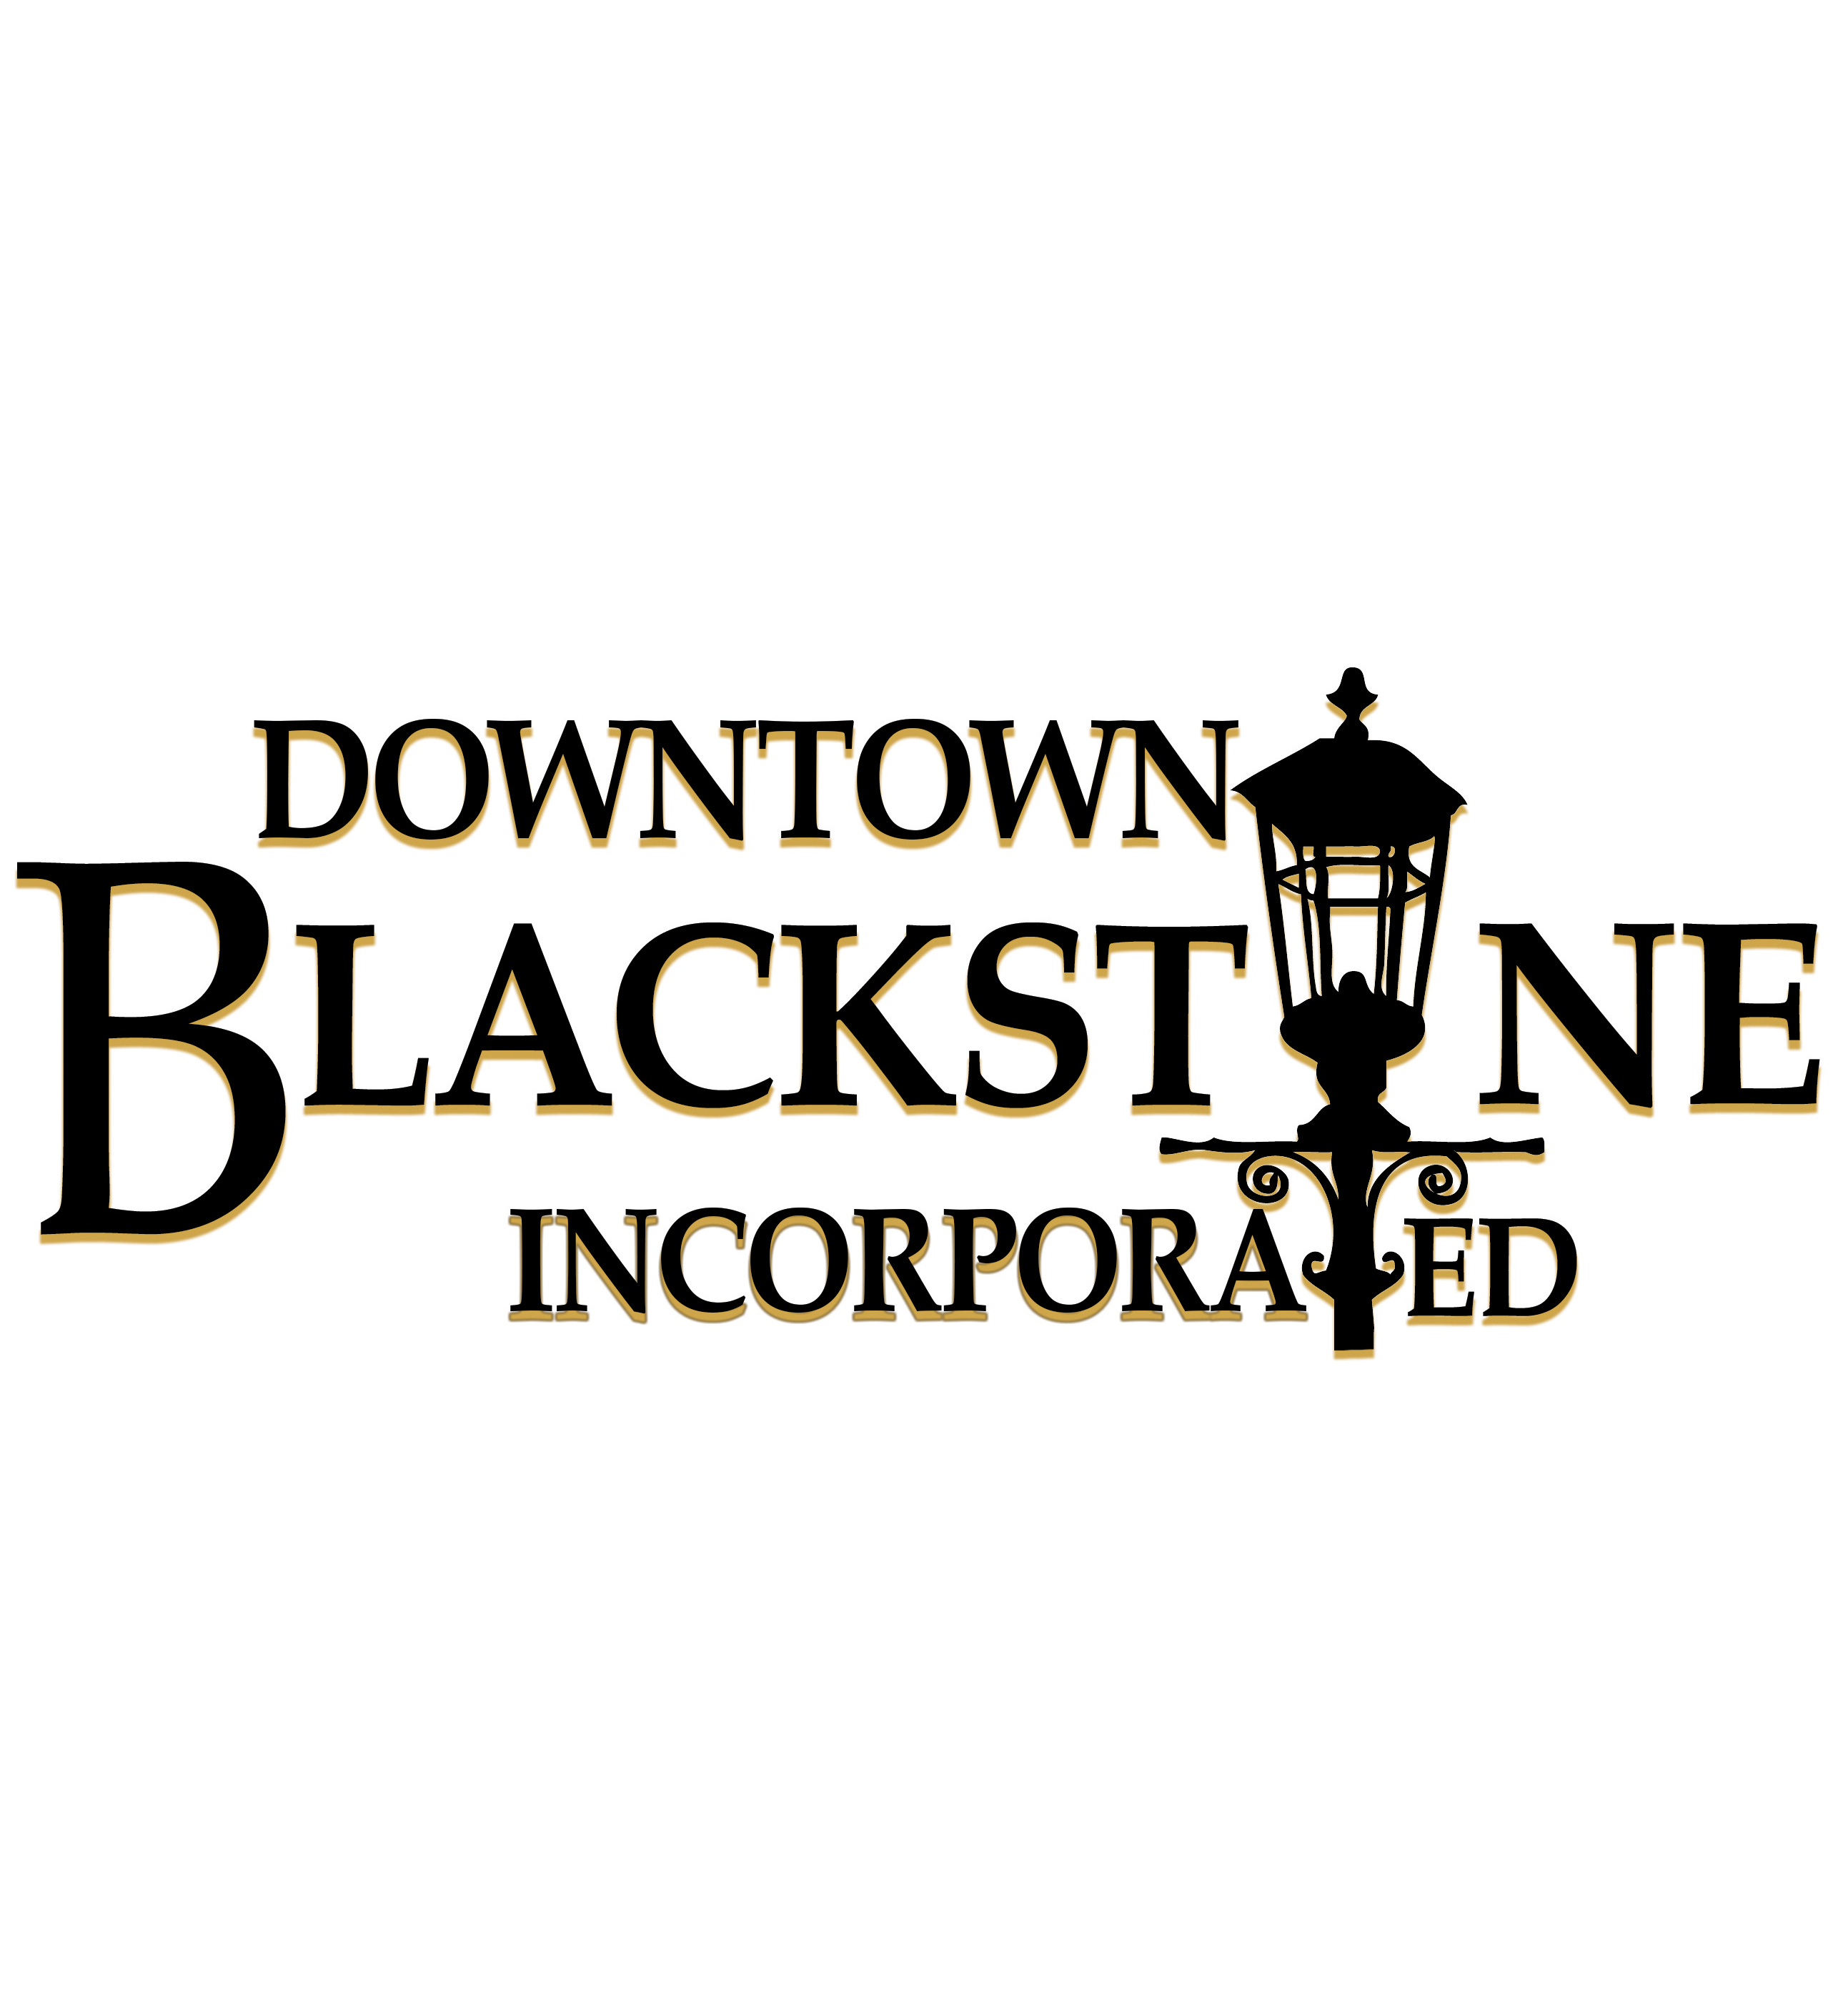 Downtown Blackstone Inc.